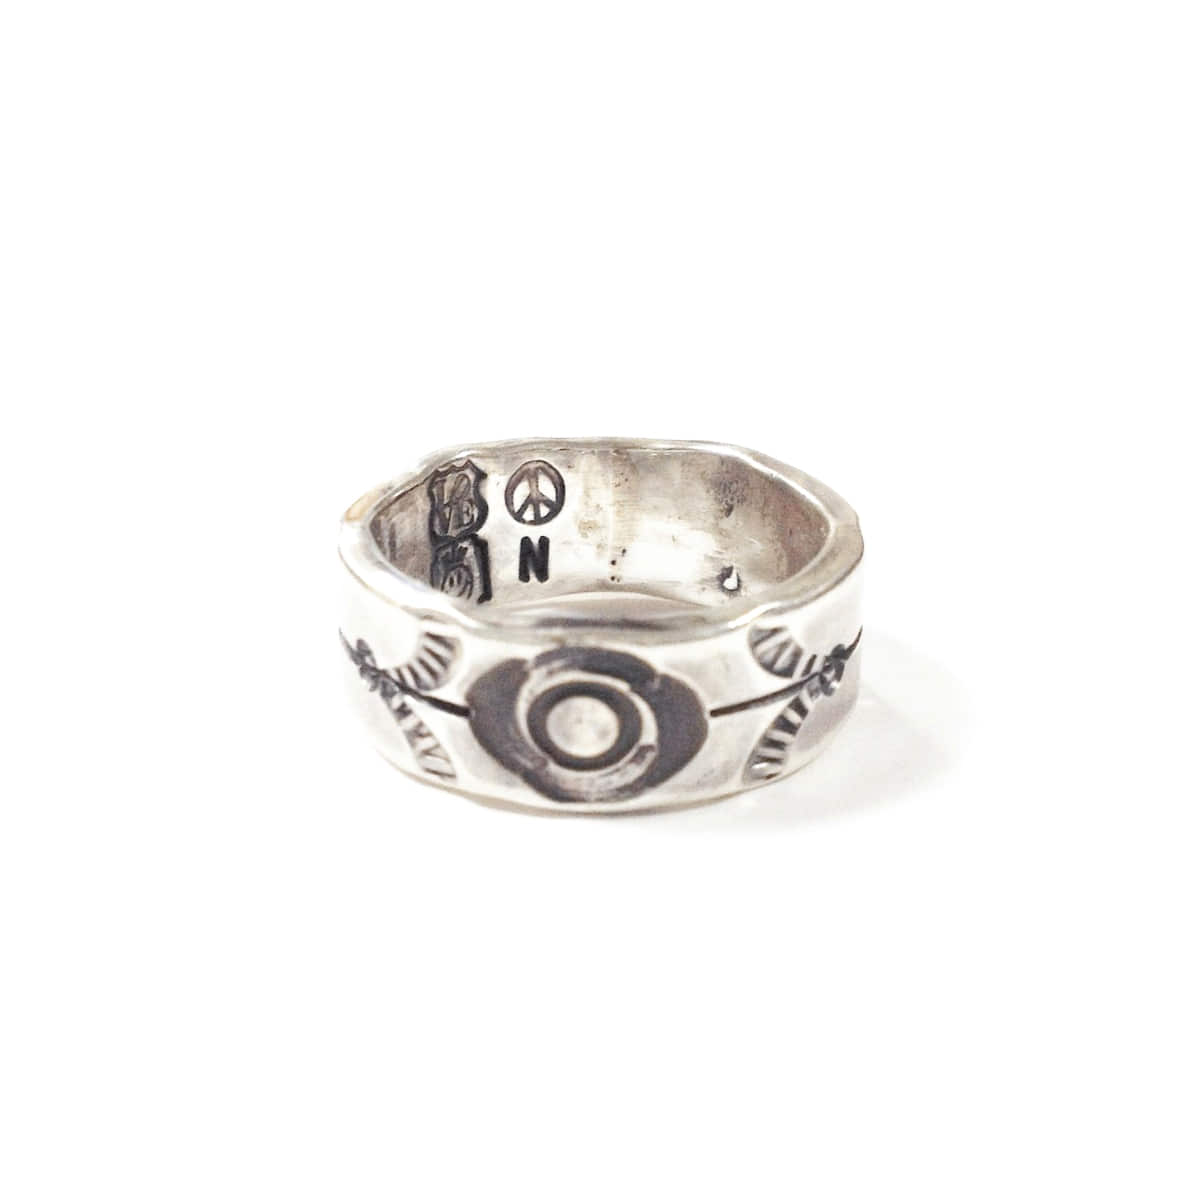 [NORTH WORKS] 900 SILVER RING 'W-022'